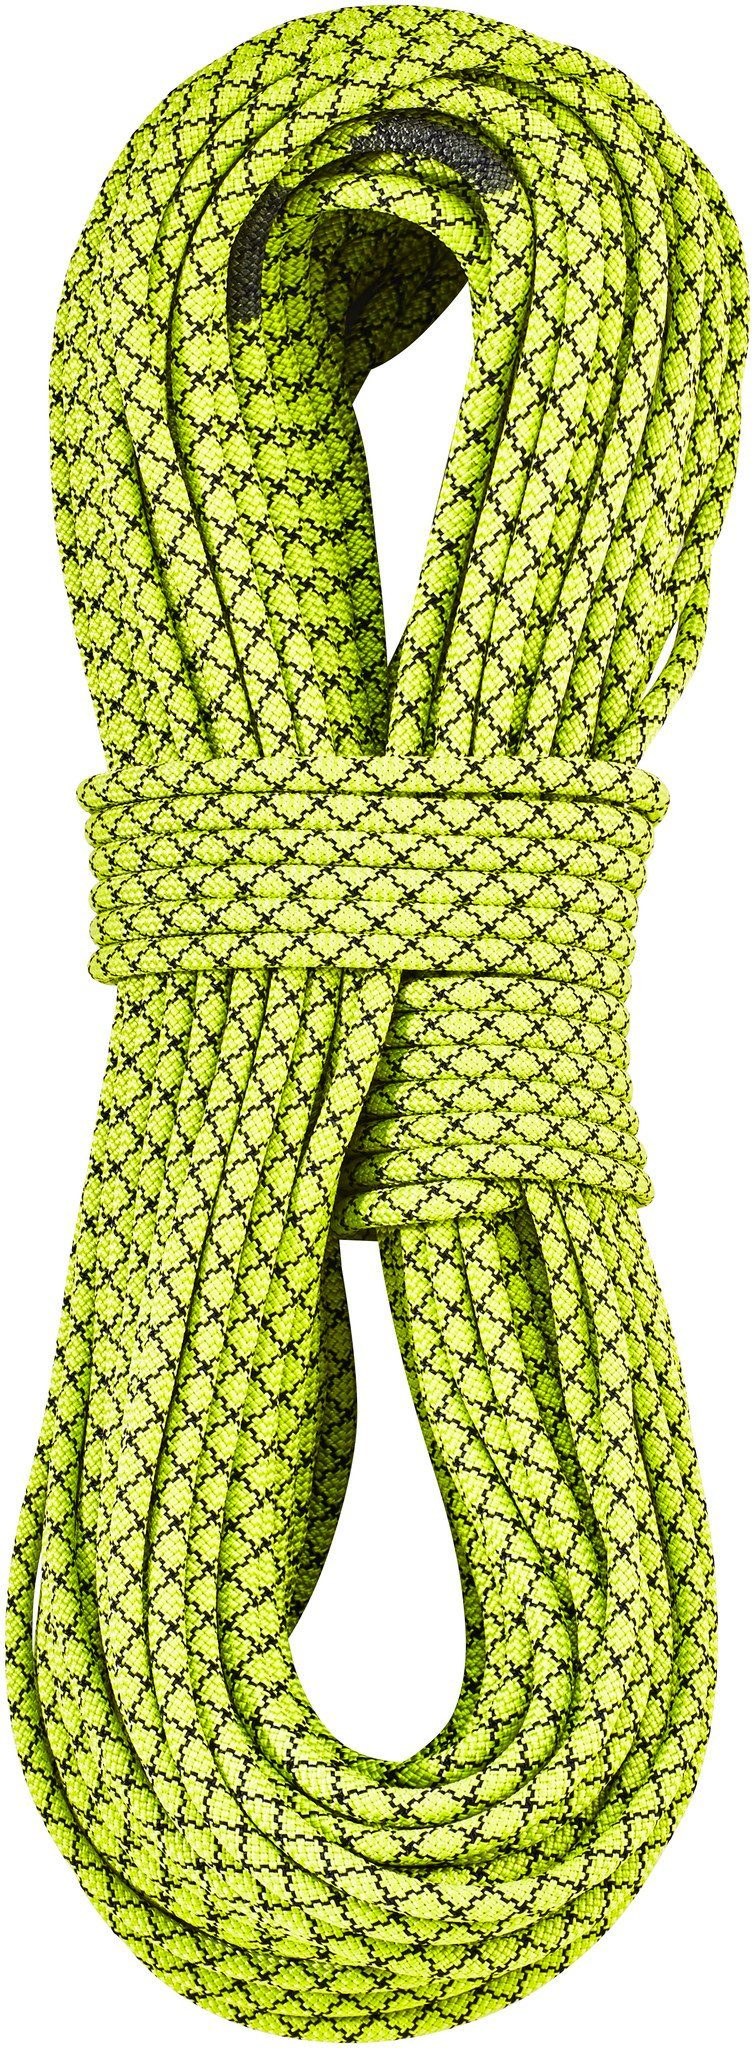 Edelrid Kletterseil »Swift Pro Dry Rope 8,9mm 40m«